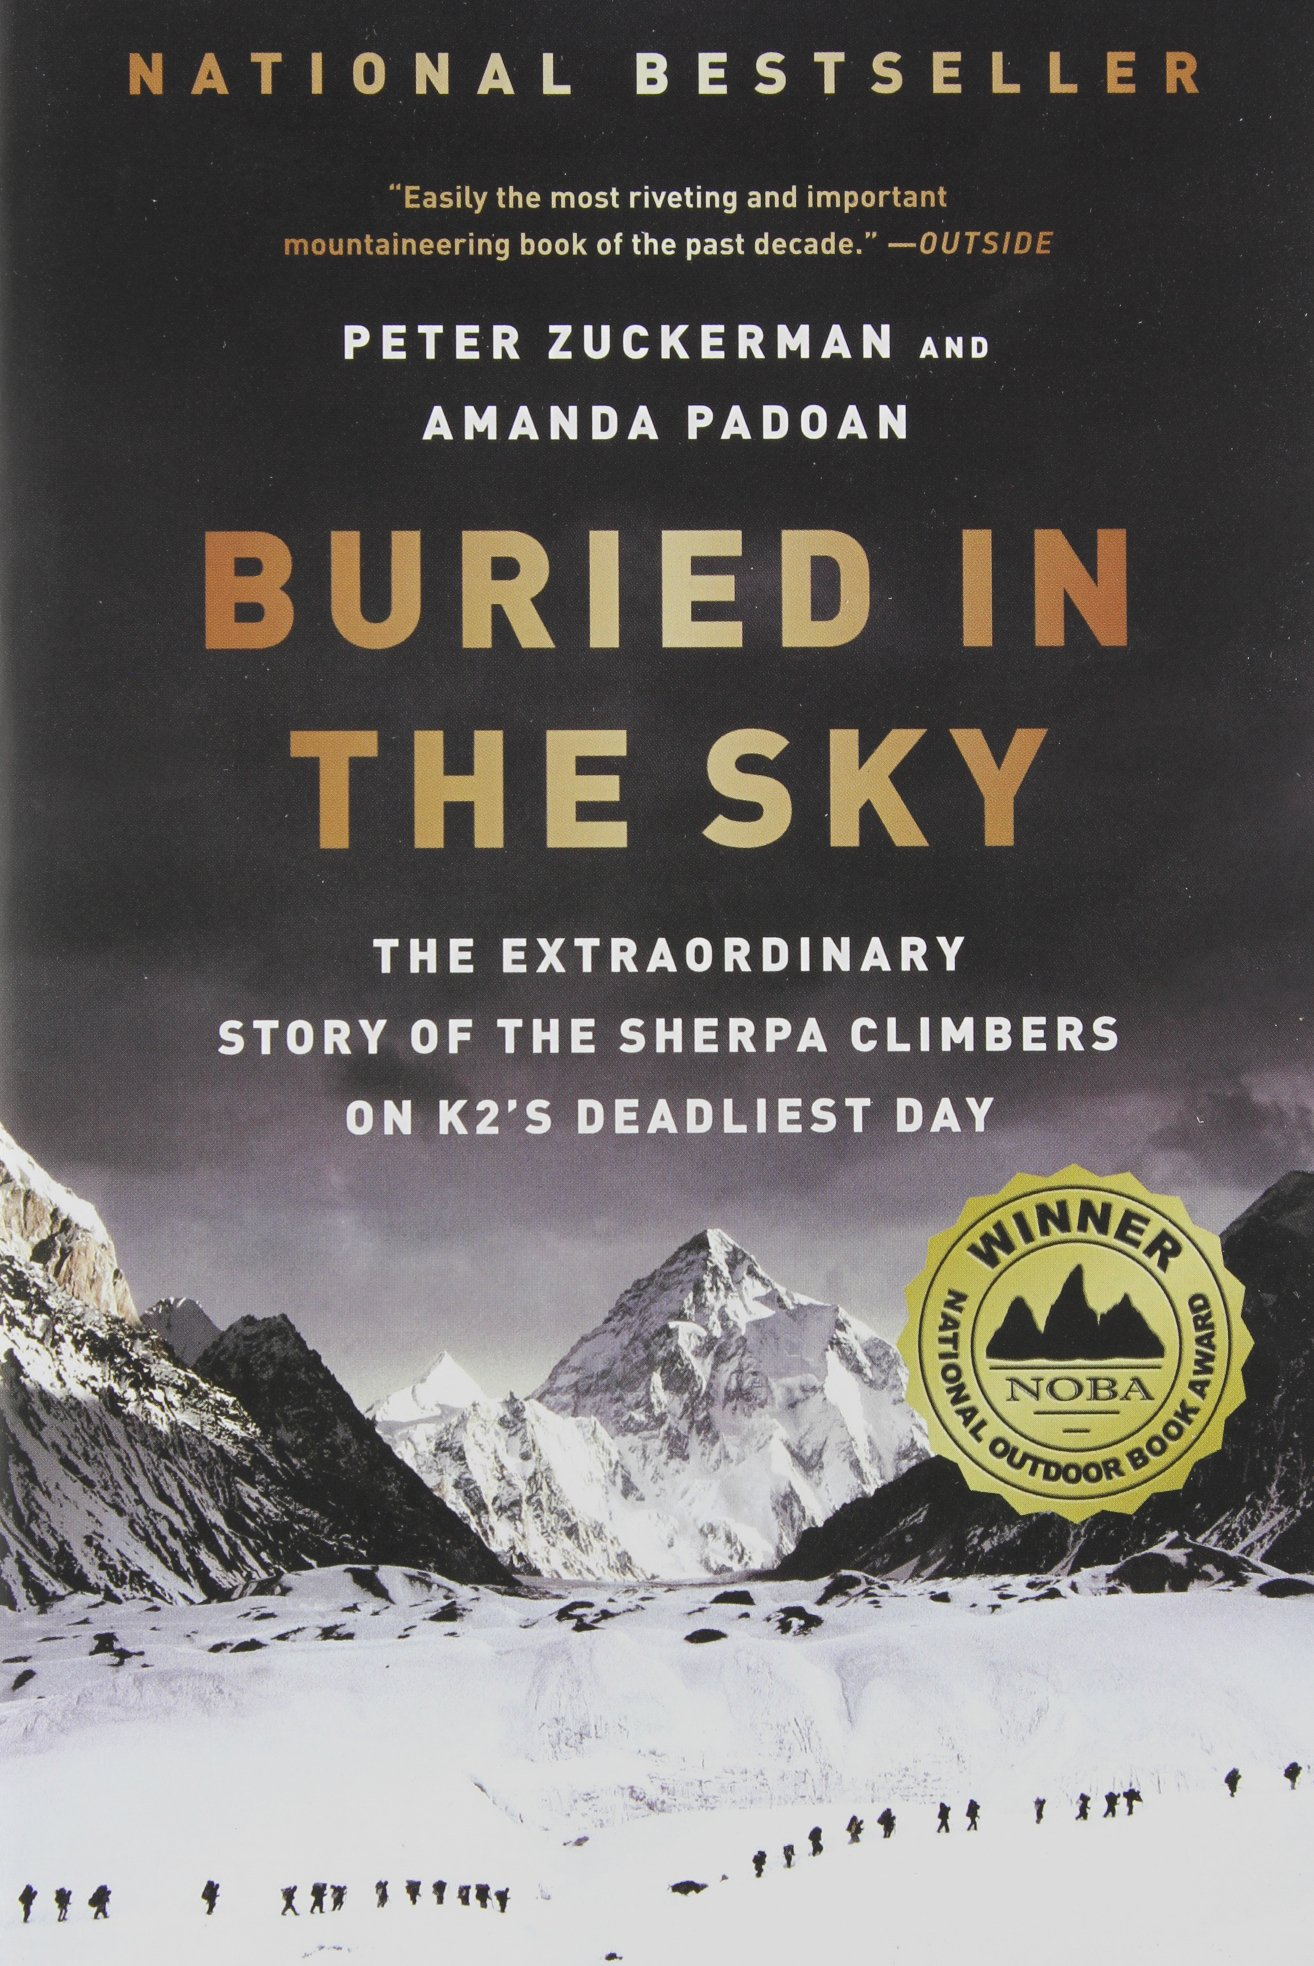 Buried Sky Extraordinary Climbers Deadliest product image